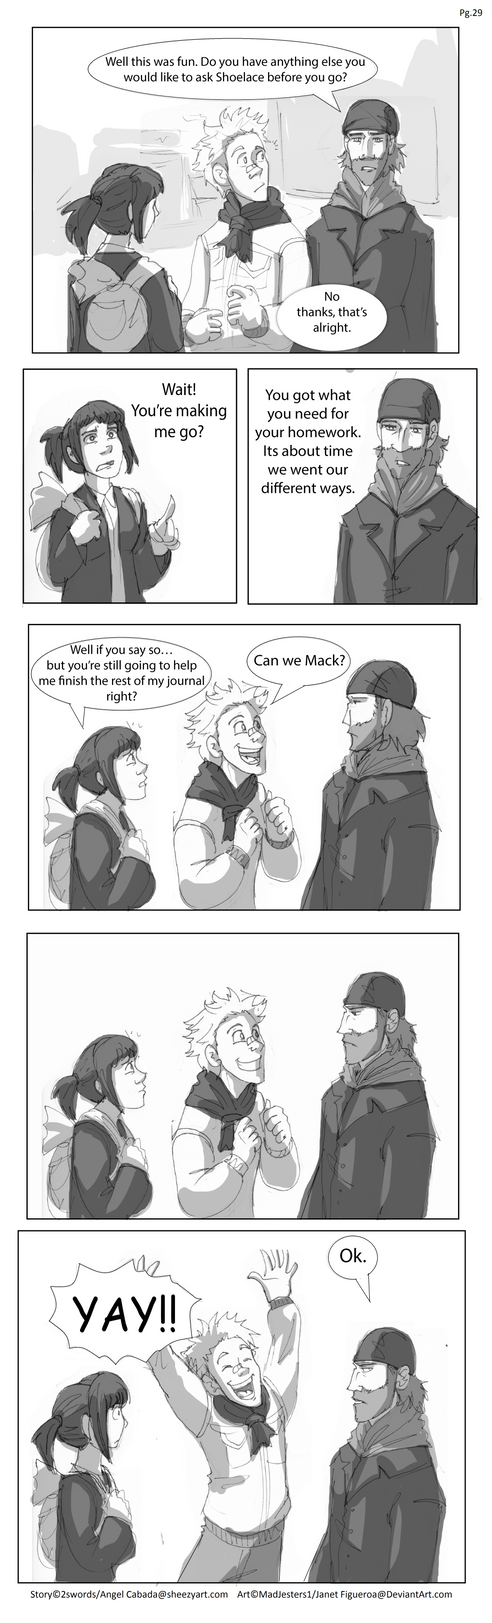 Ragged Muffin Quartet-Pg.29 by MadJesters1